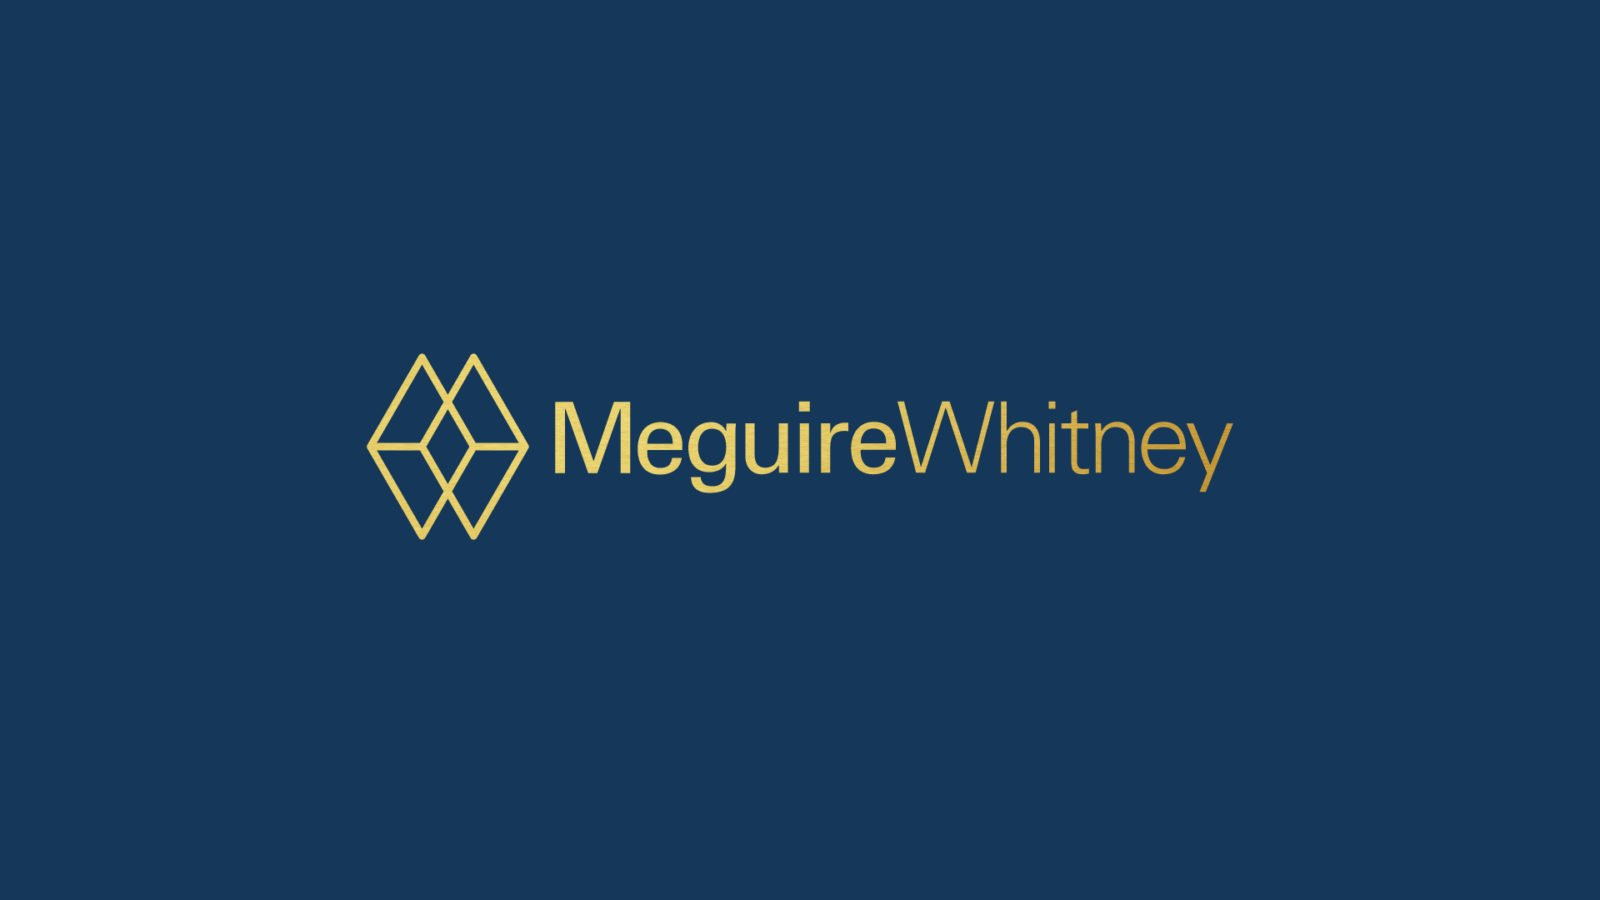 An Identity for the Meguire Whitney By Bullhorn Creative